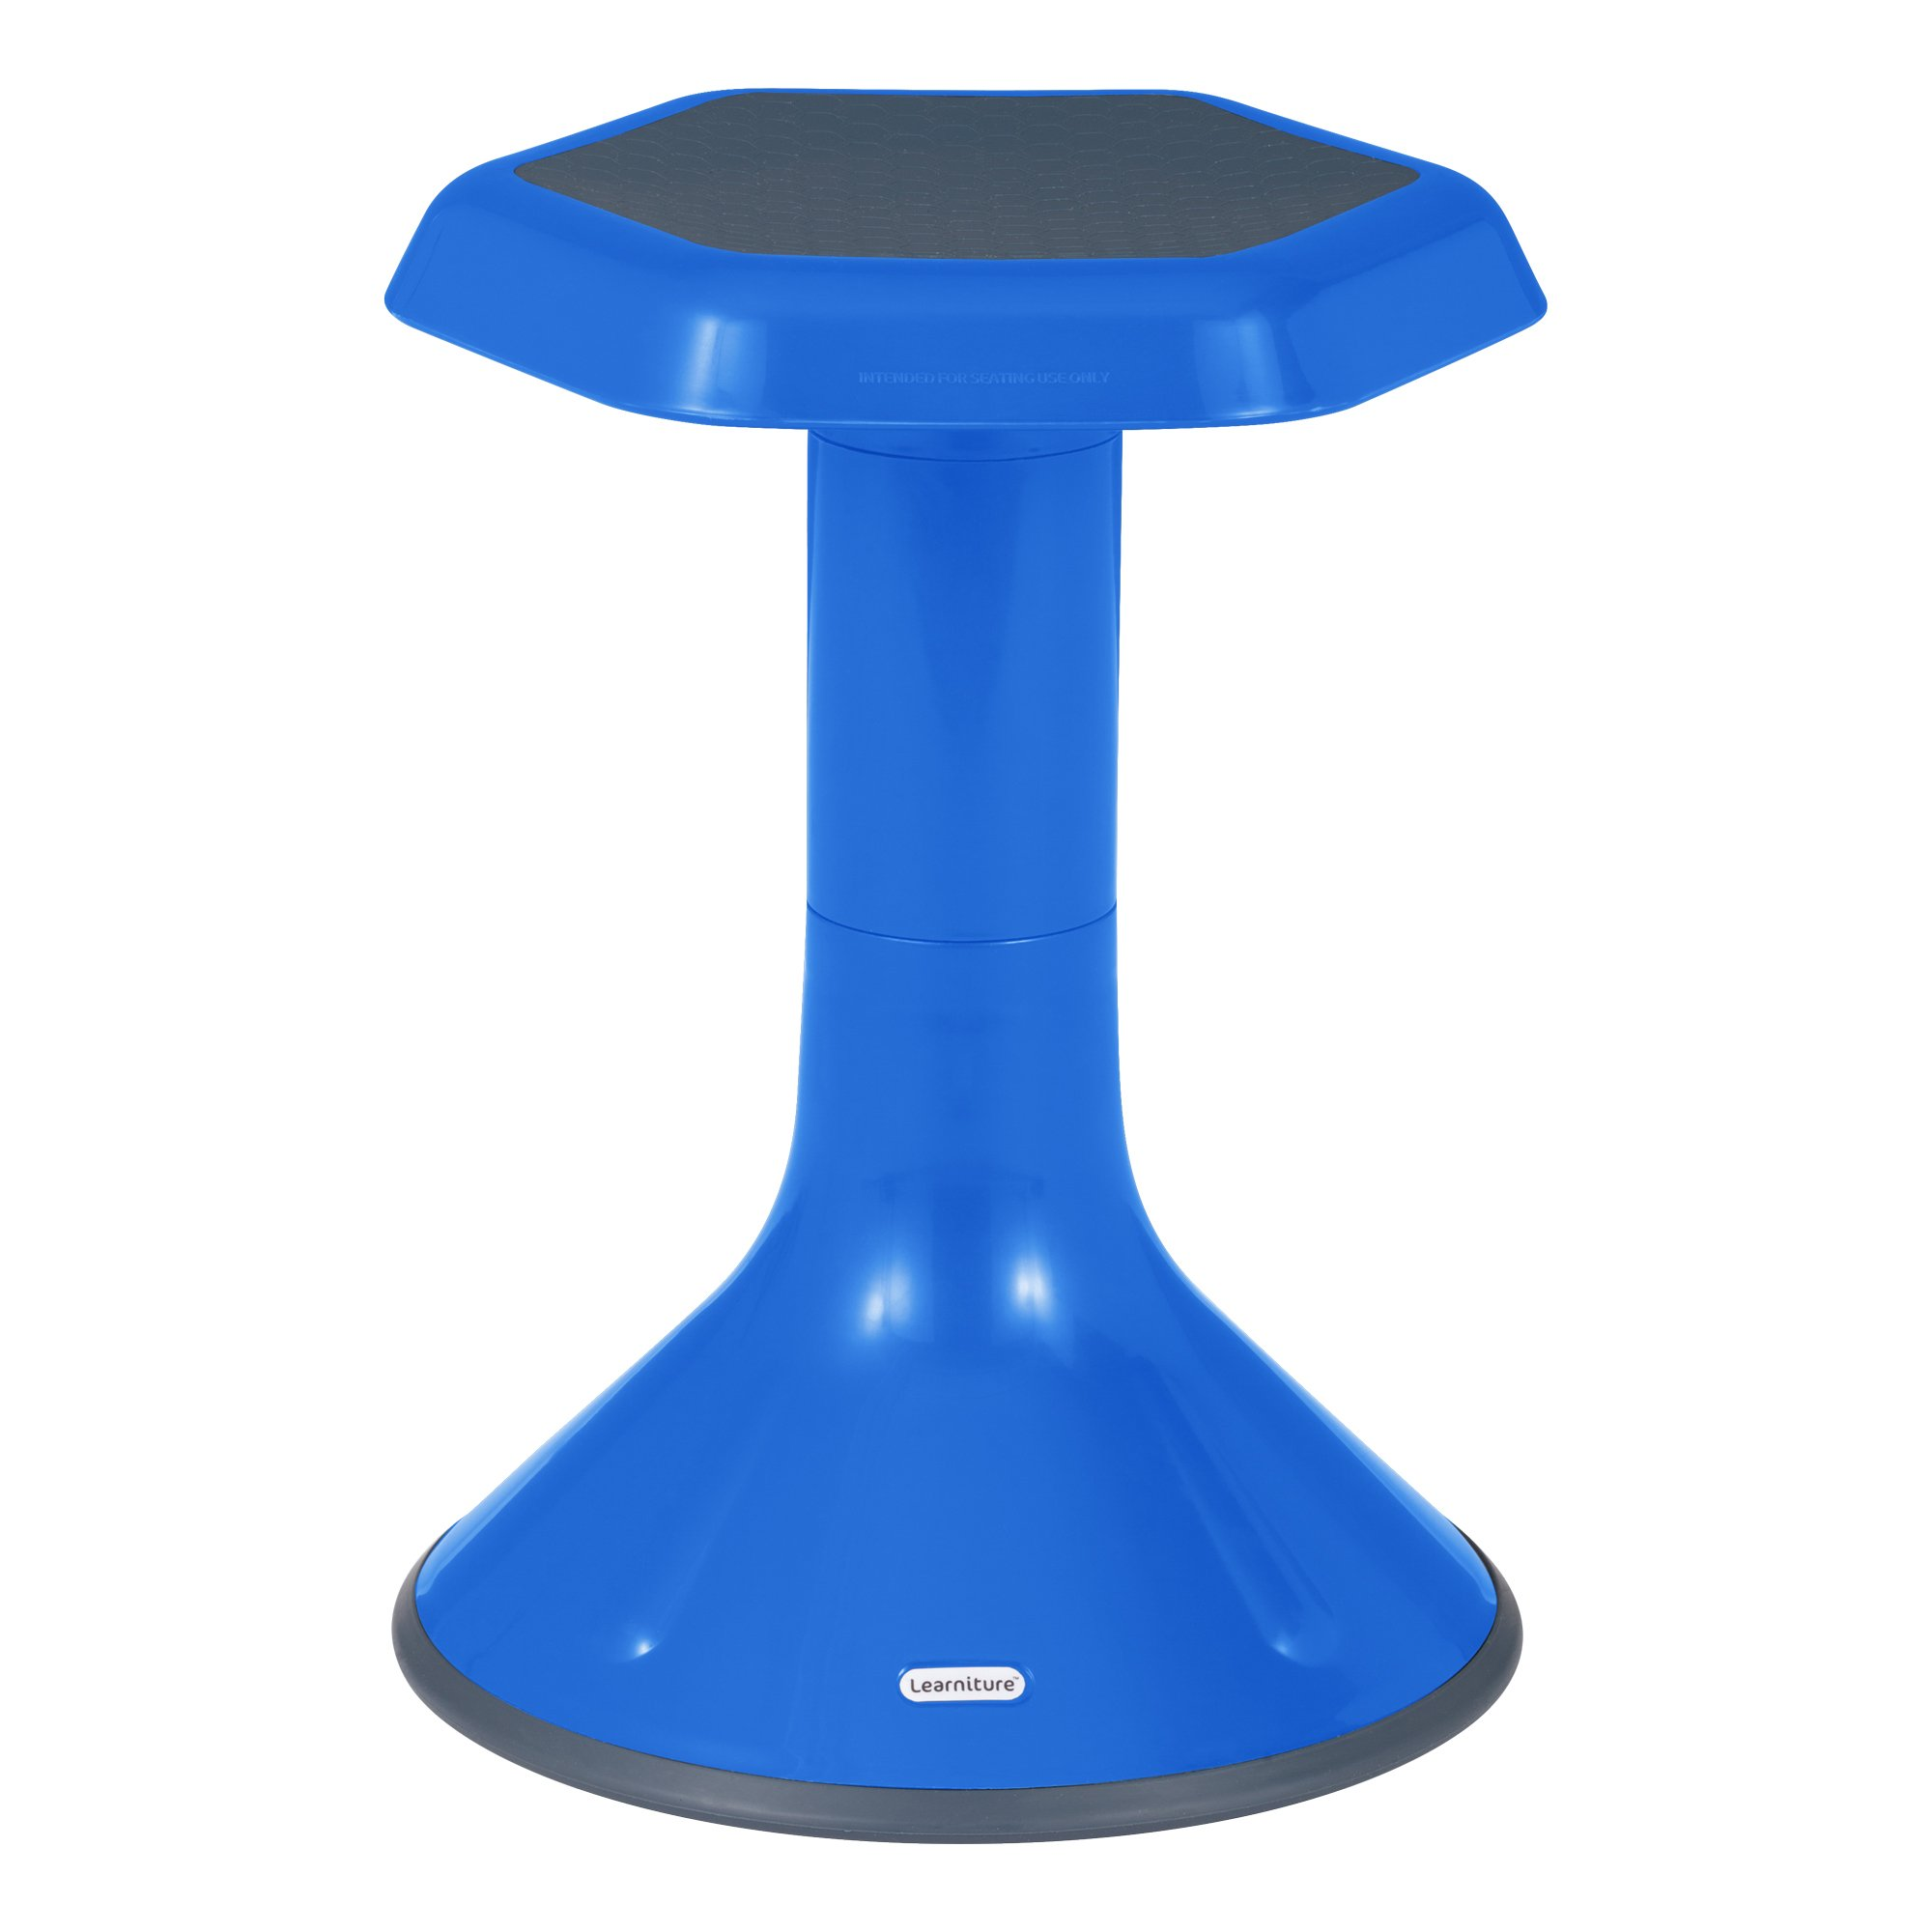 Learniture Active Learning Chair/Stool, 18'' H, Blue, LNT-3046-18BL